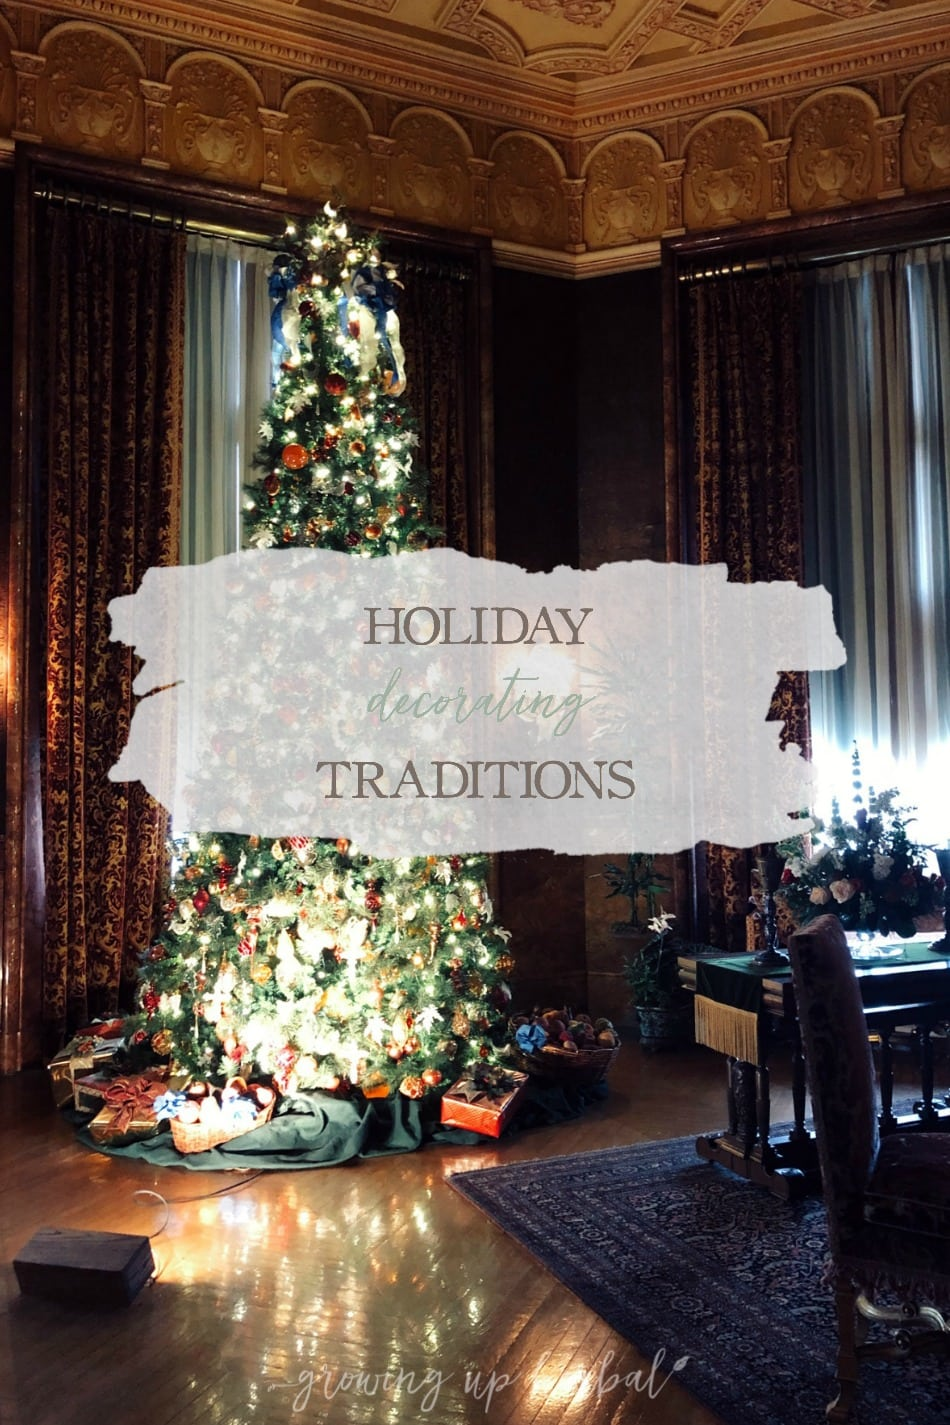 Holiday Decorating Traditions | Growing Up Herbal | I'm one of those people that refuses to decorate for Christmas until after Thanksgiving. What about you? Do you have any holiday decorating traditions?